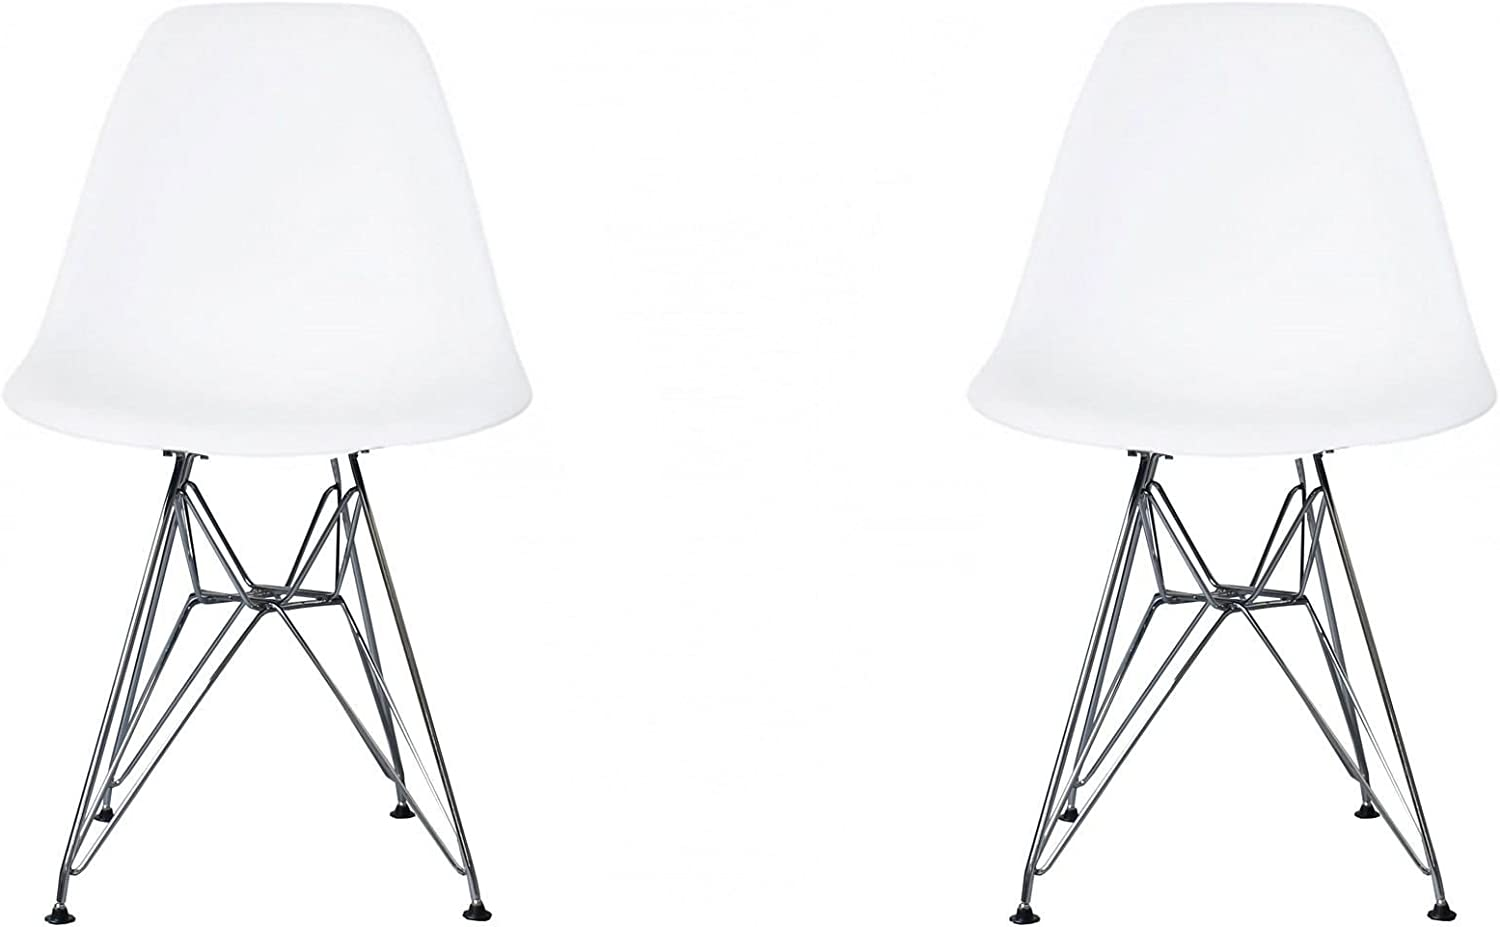 Meubles House S2-PC-0116-W Eames Style Side Chair-Modern Eiffel Style Adult Dining Chrome Metal Base-White (Set of Two)